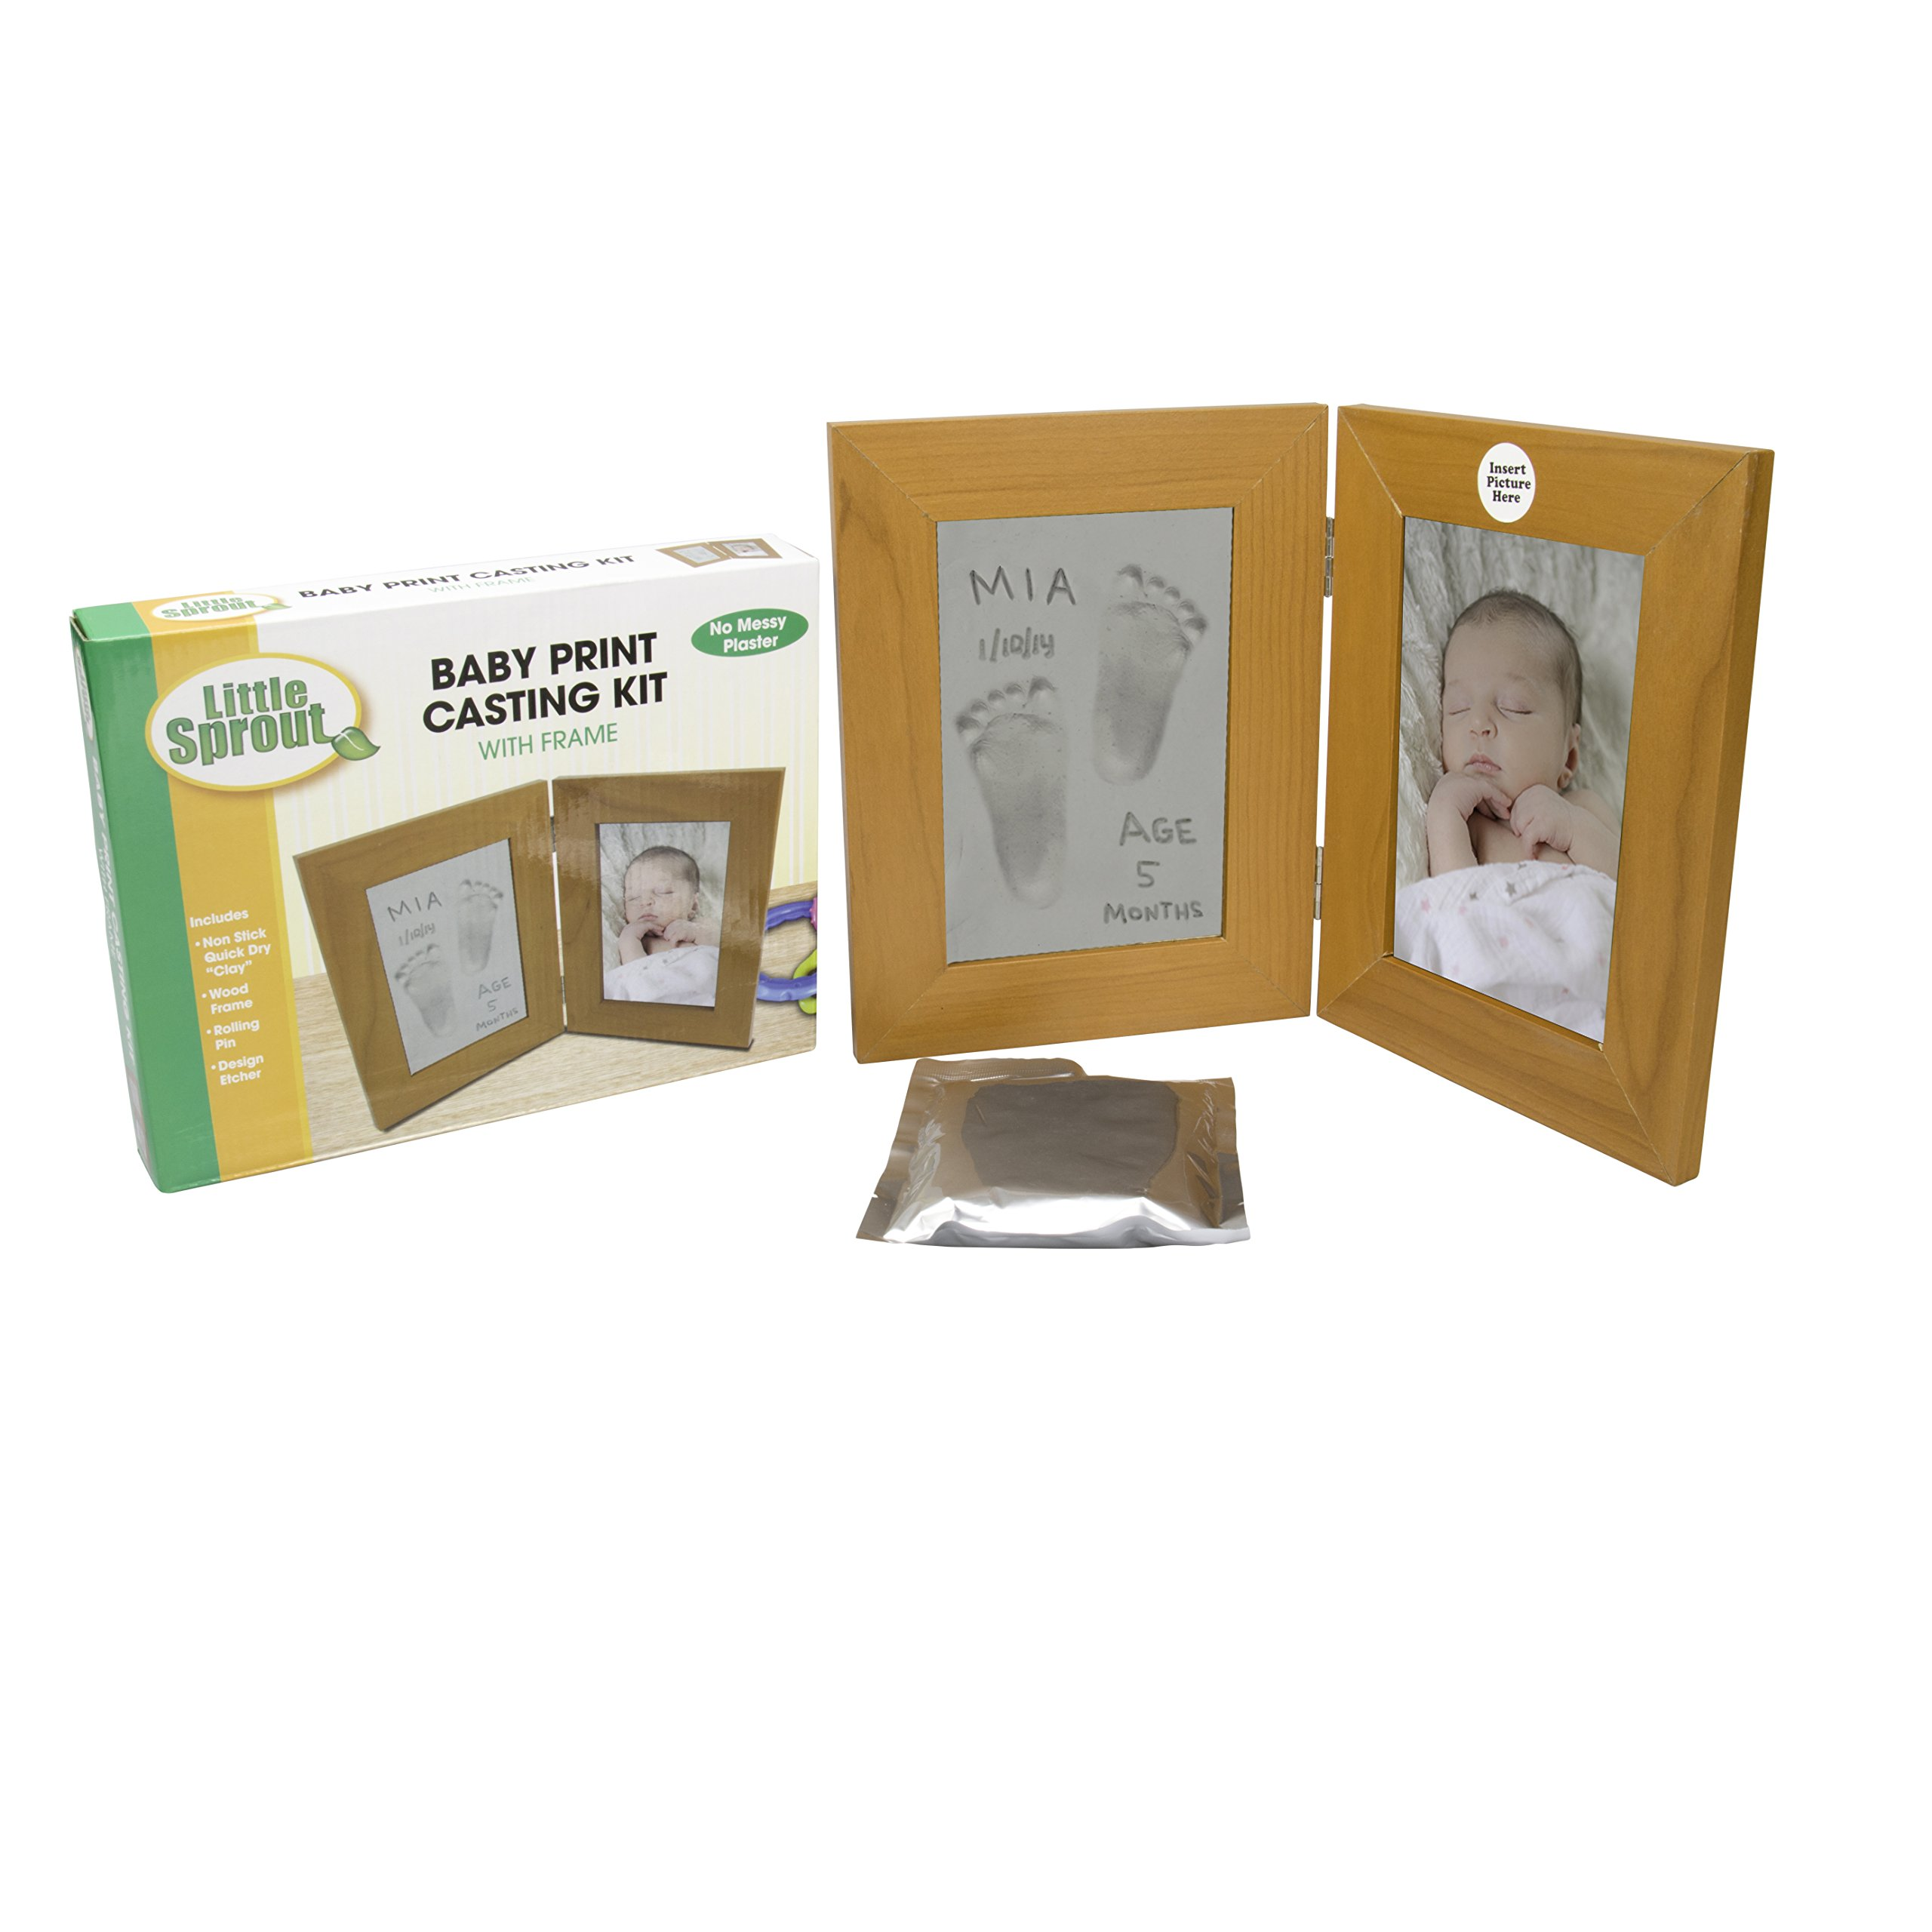 Baby Print Casting Kit - Air Dry No Mess Keepsake Kit with 4'' X 6'' Picture Frame - No Baking Required by Little Sprout (Image #1)